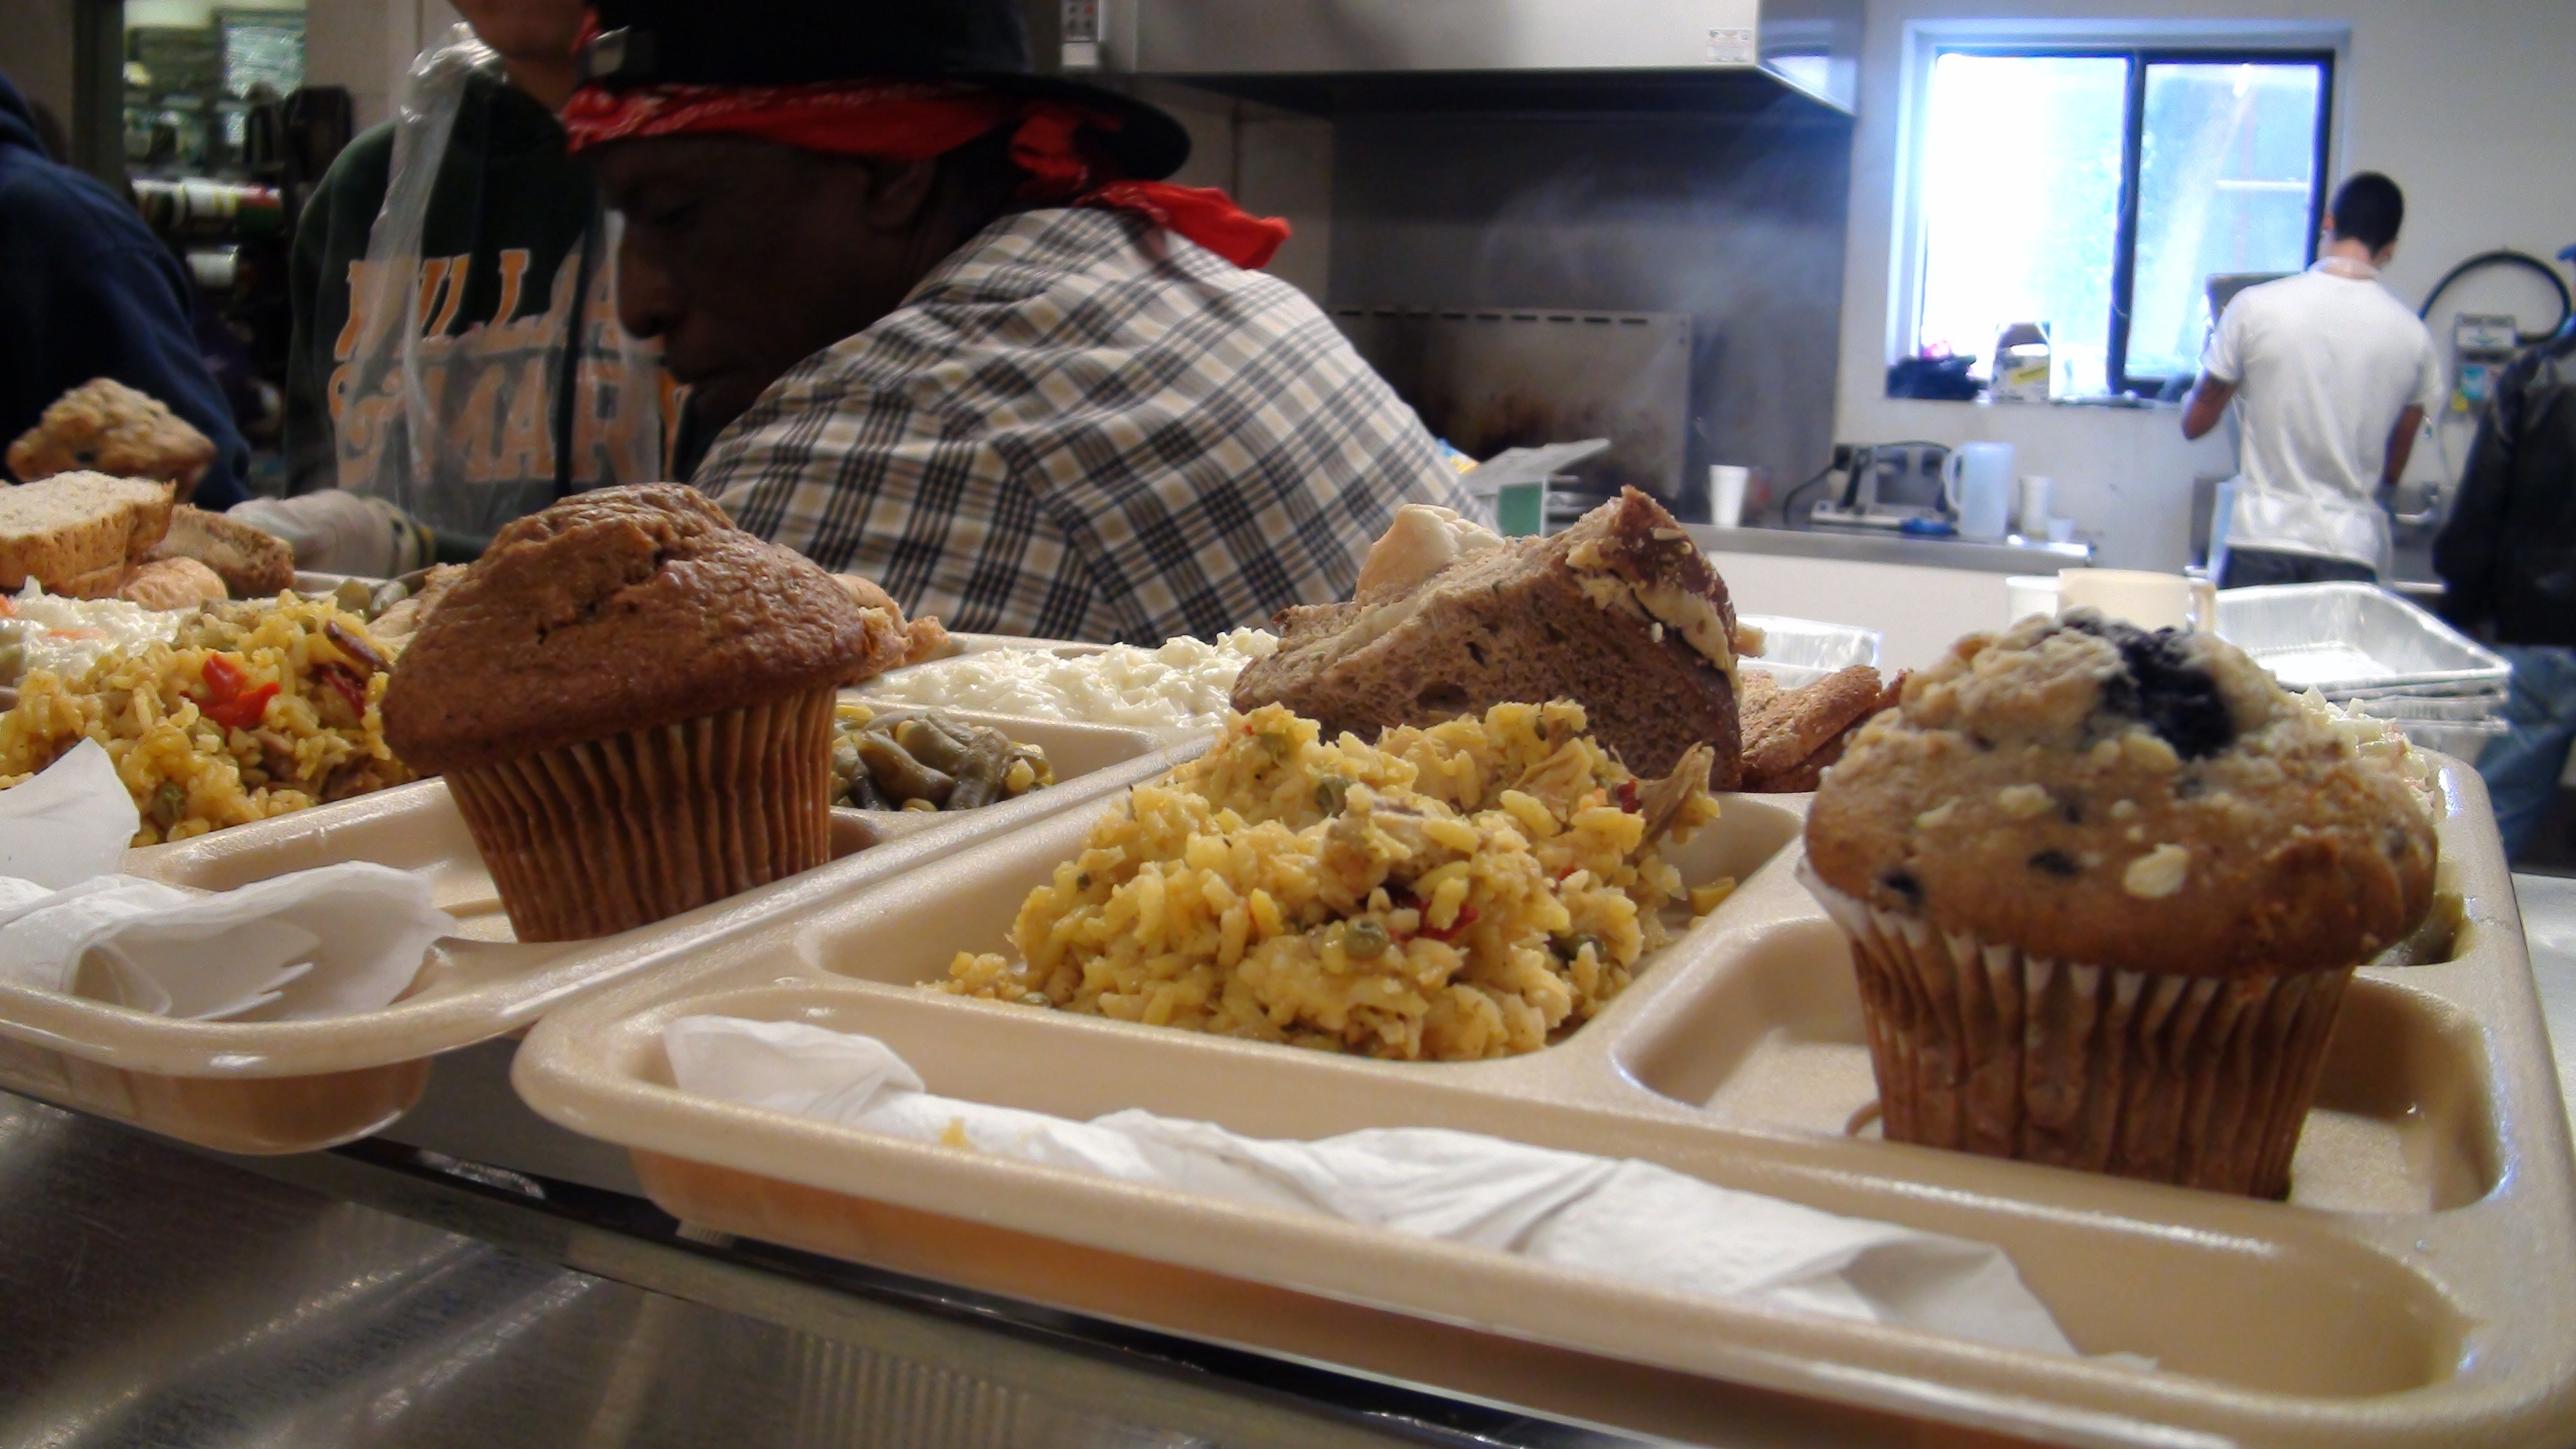 food on a tray at a soup kitchen